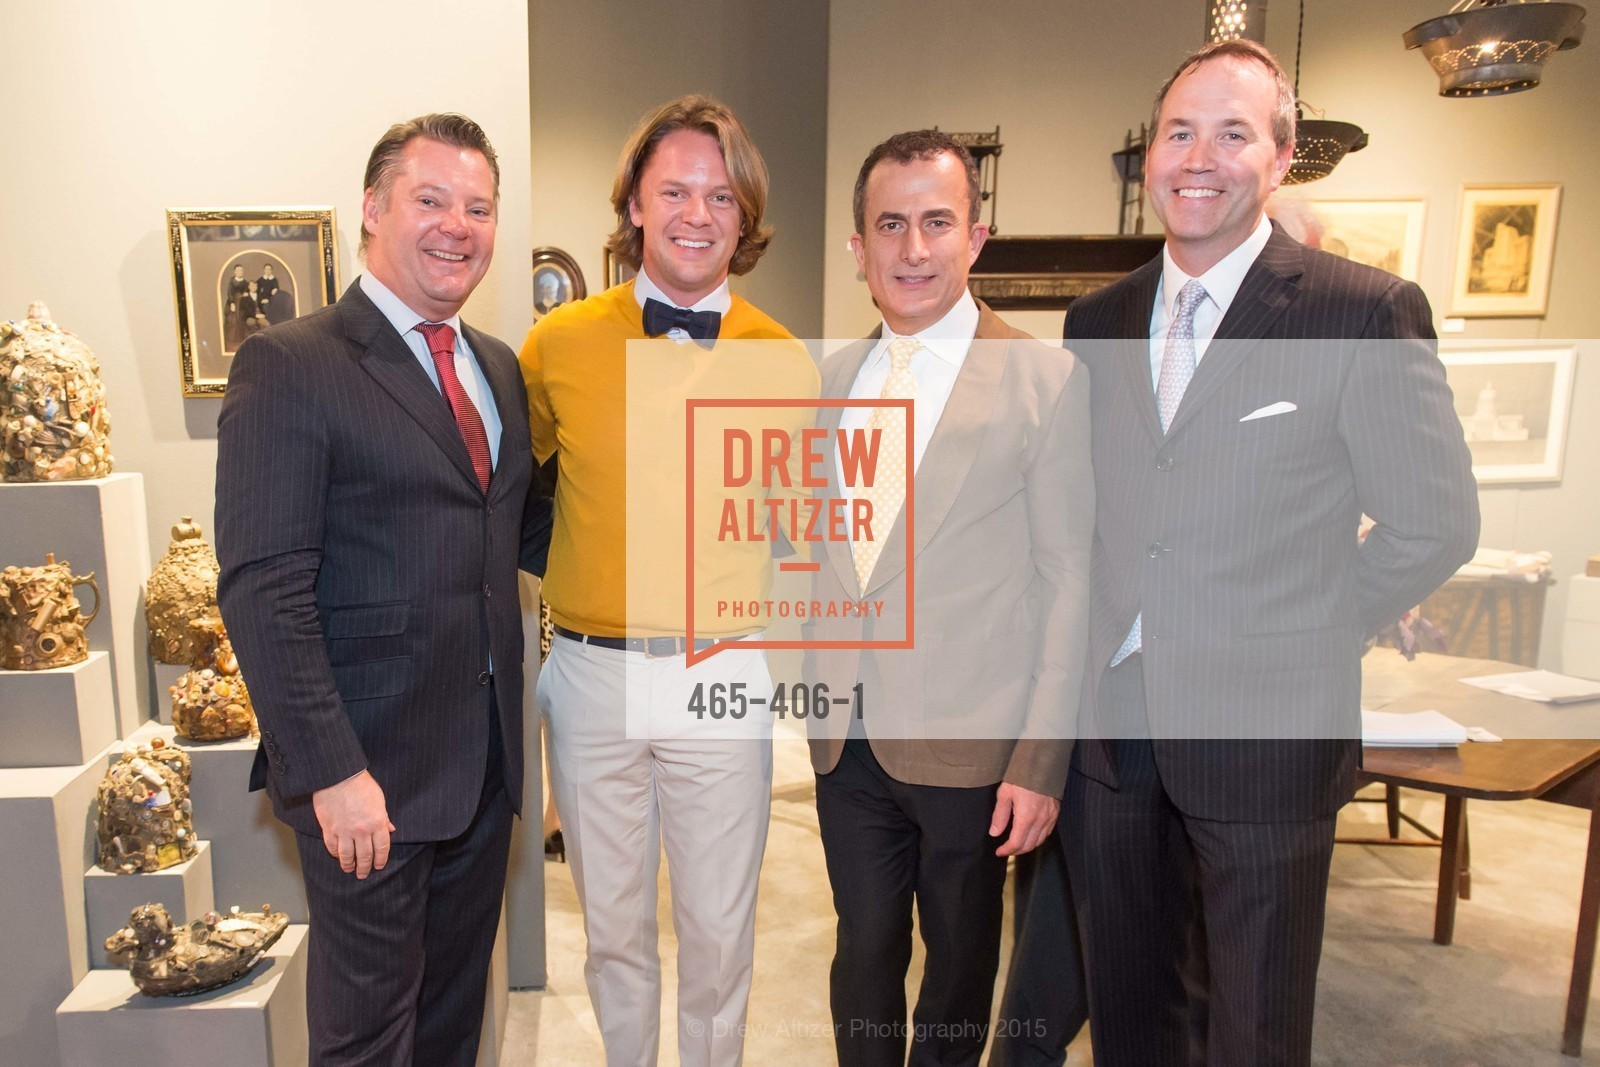 Andreas Rippel, Darren Bechtel, Jorge Maumer, Chip Zecher, The San Francisco Fall Antiques Show, Festival Pavilion, Fort Mason, October 21st, 2015,Drew Altizer, Drew Altizer Photography, full-service agency, private events, San Francisco photographer, photographer california